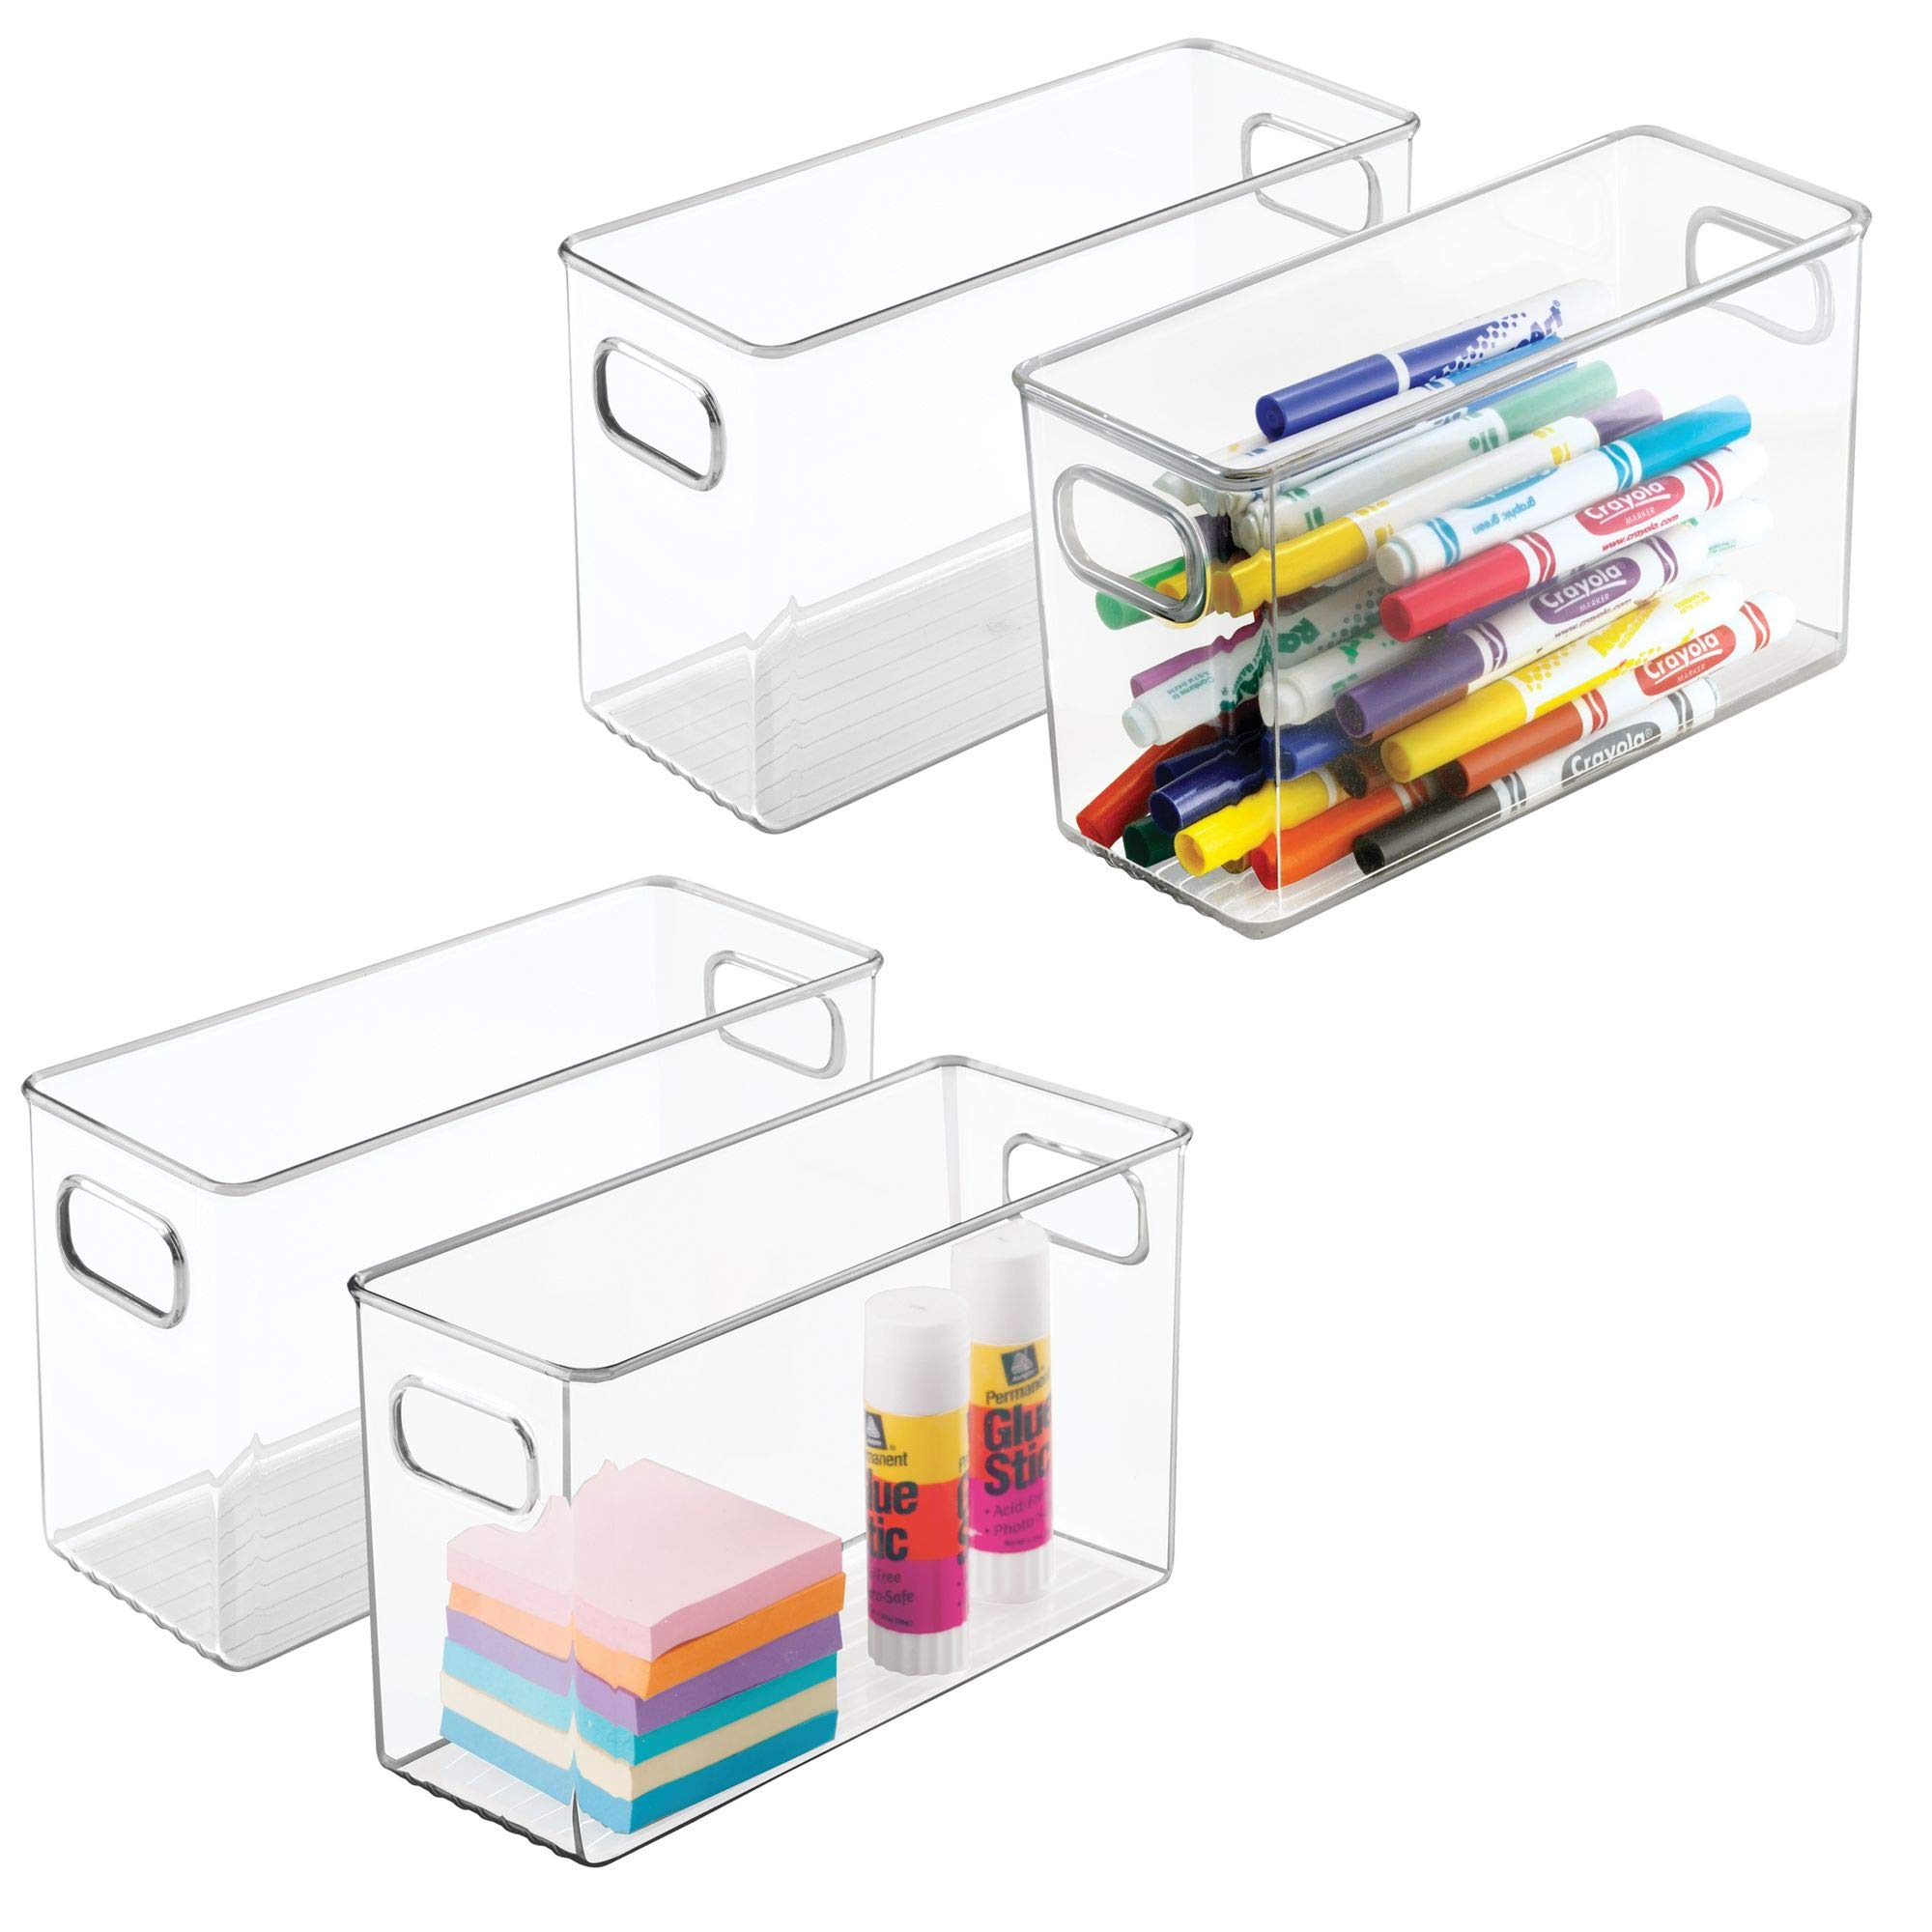 mDesign Office Supplies Desk Organizer Bin for Pens, Pencils, Markers, Highlighters, Tape - Pack of 4, 10'' x 4'' x 6'', Clear by mDesign (Image #1)